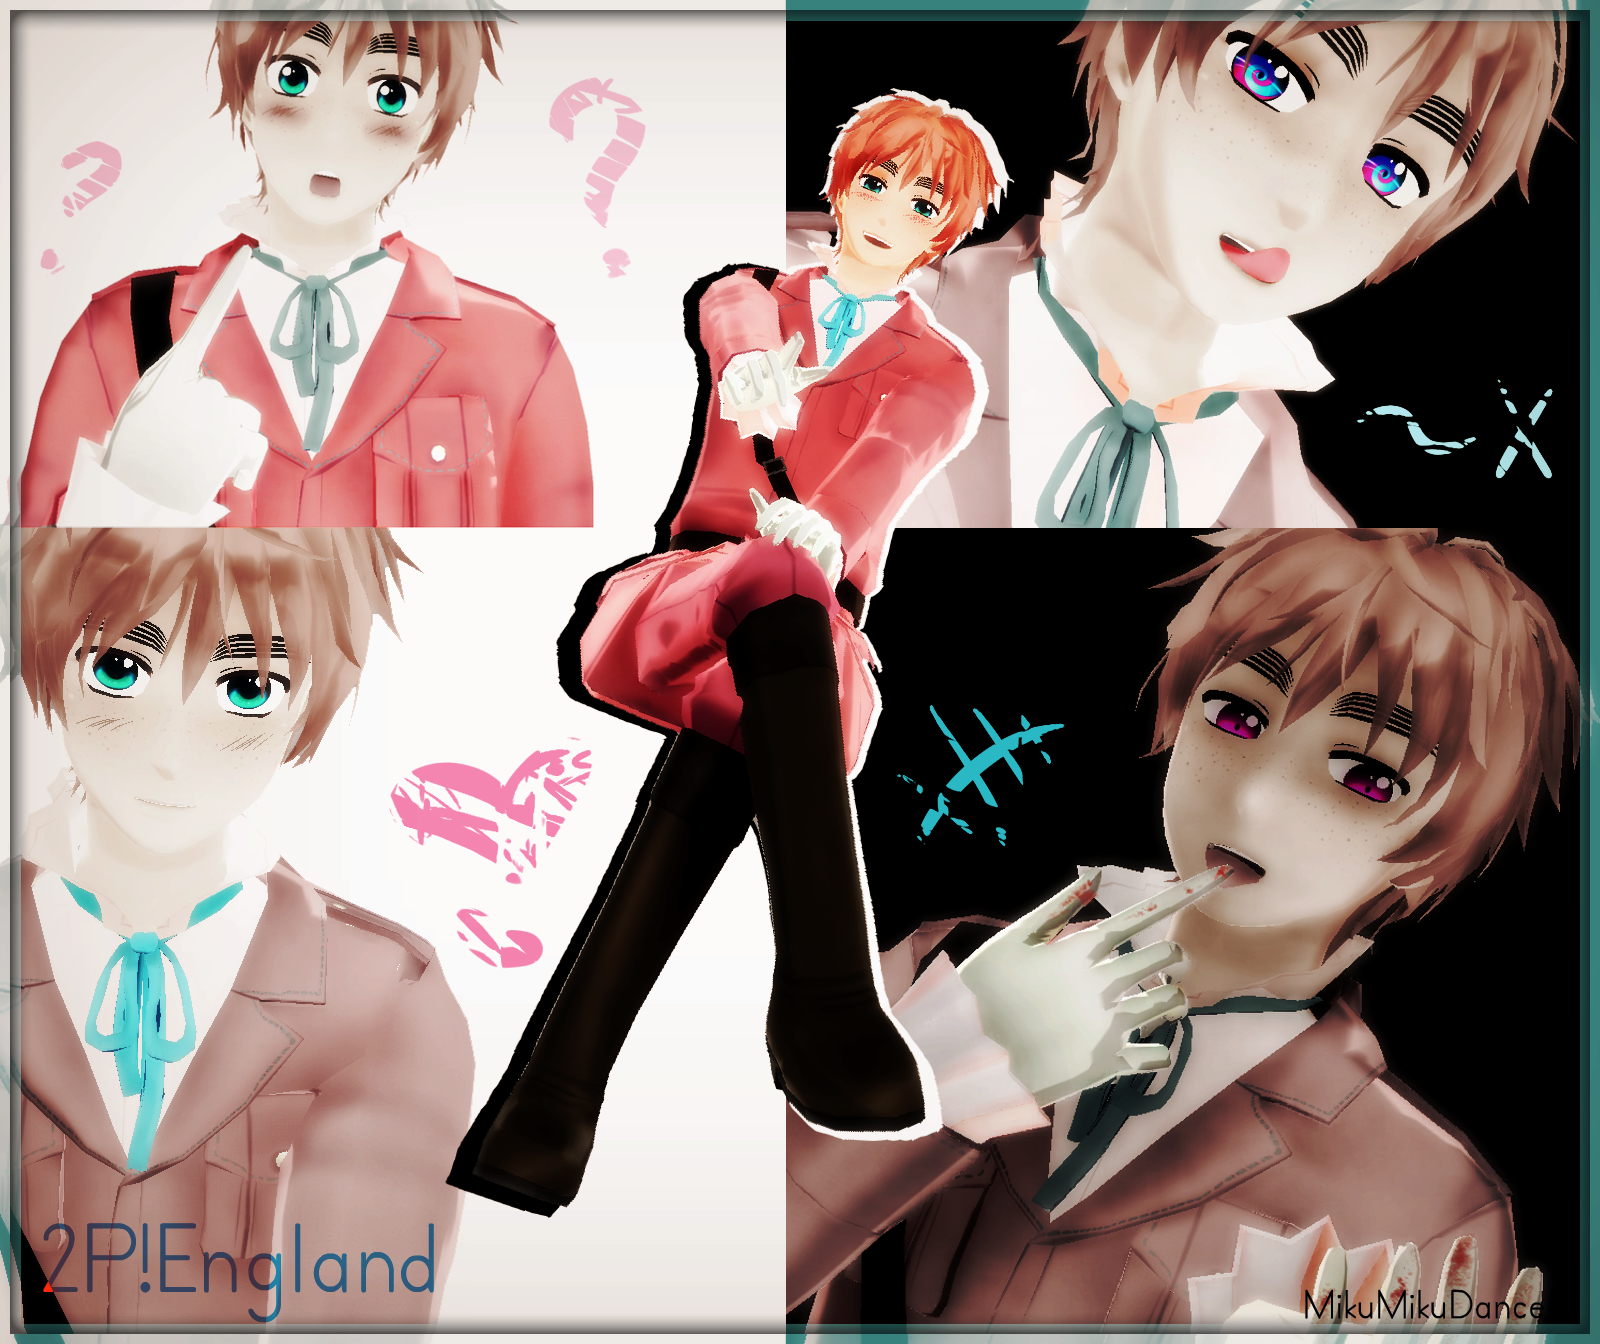 2p hetalia images 2p england hd wallpaper and background photos - England By Tahocherry 2p England By Tahocherry